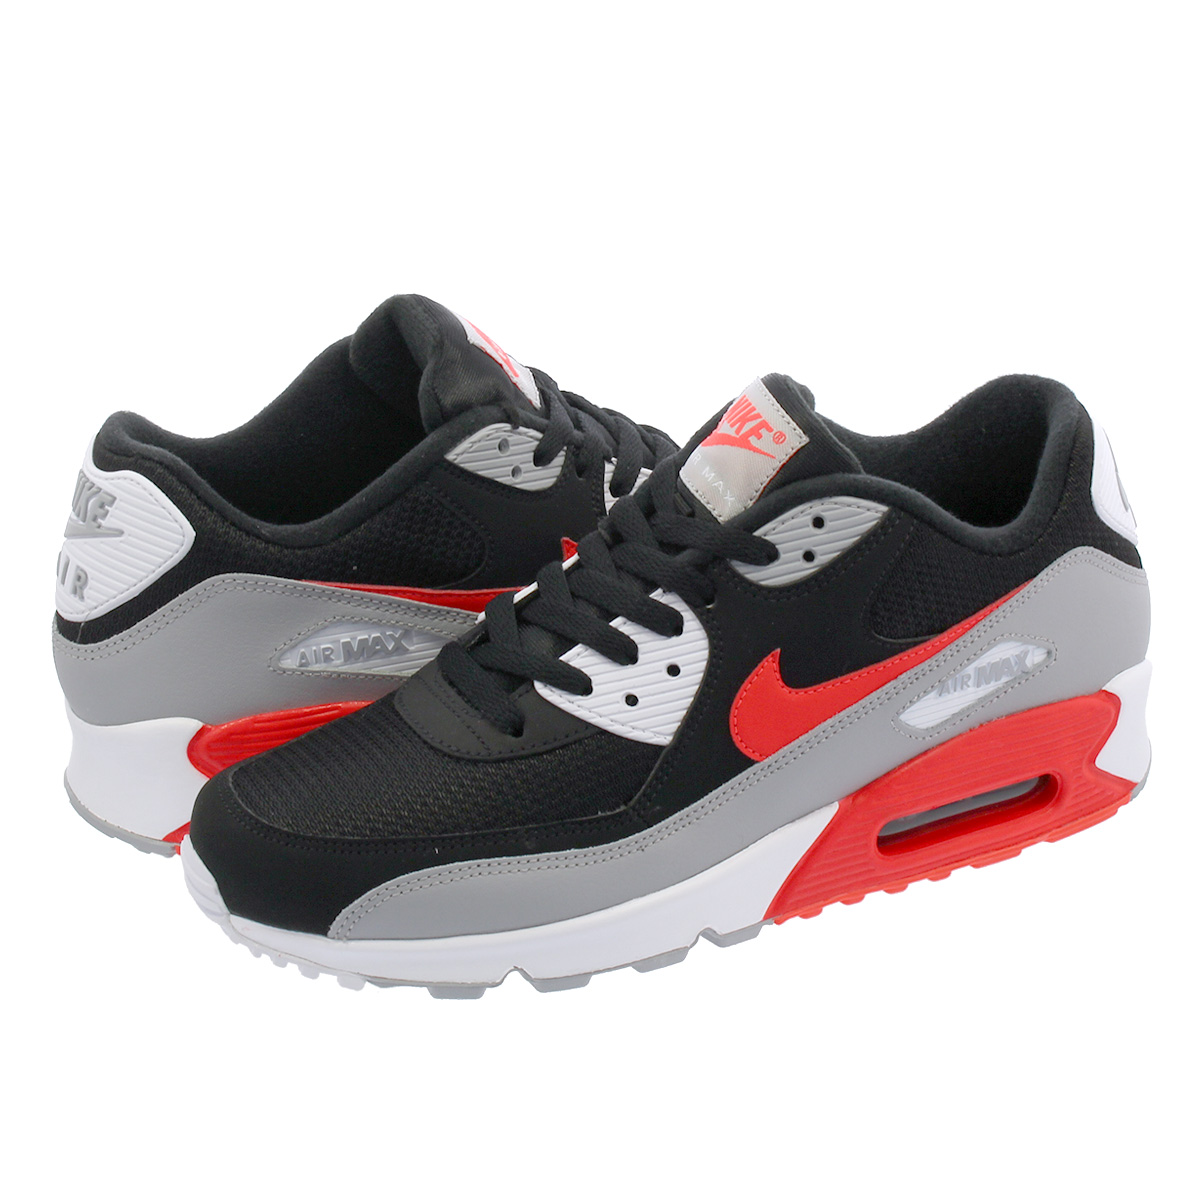 cf63cad875 NIKE AIR MAX 90 ESSENTIAL Kie Ney AMAX 90 essential BLACK/WOLF GREY/BRIGHT  ...